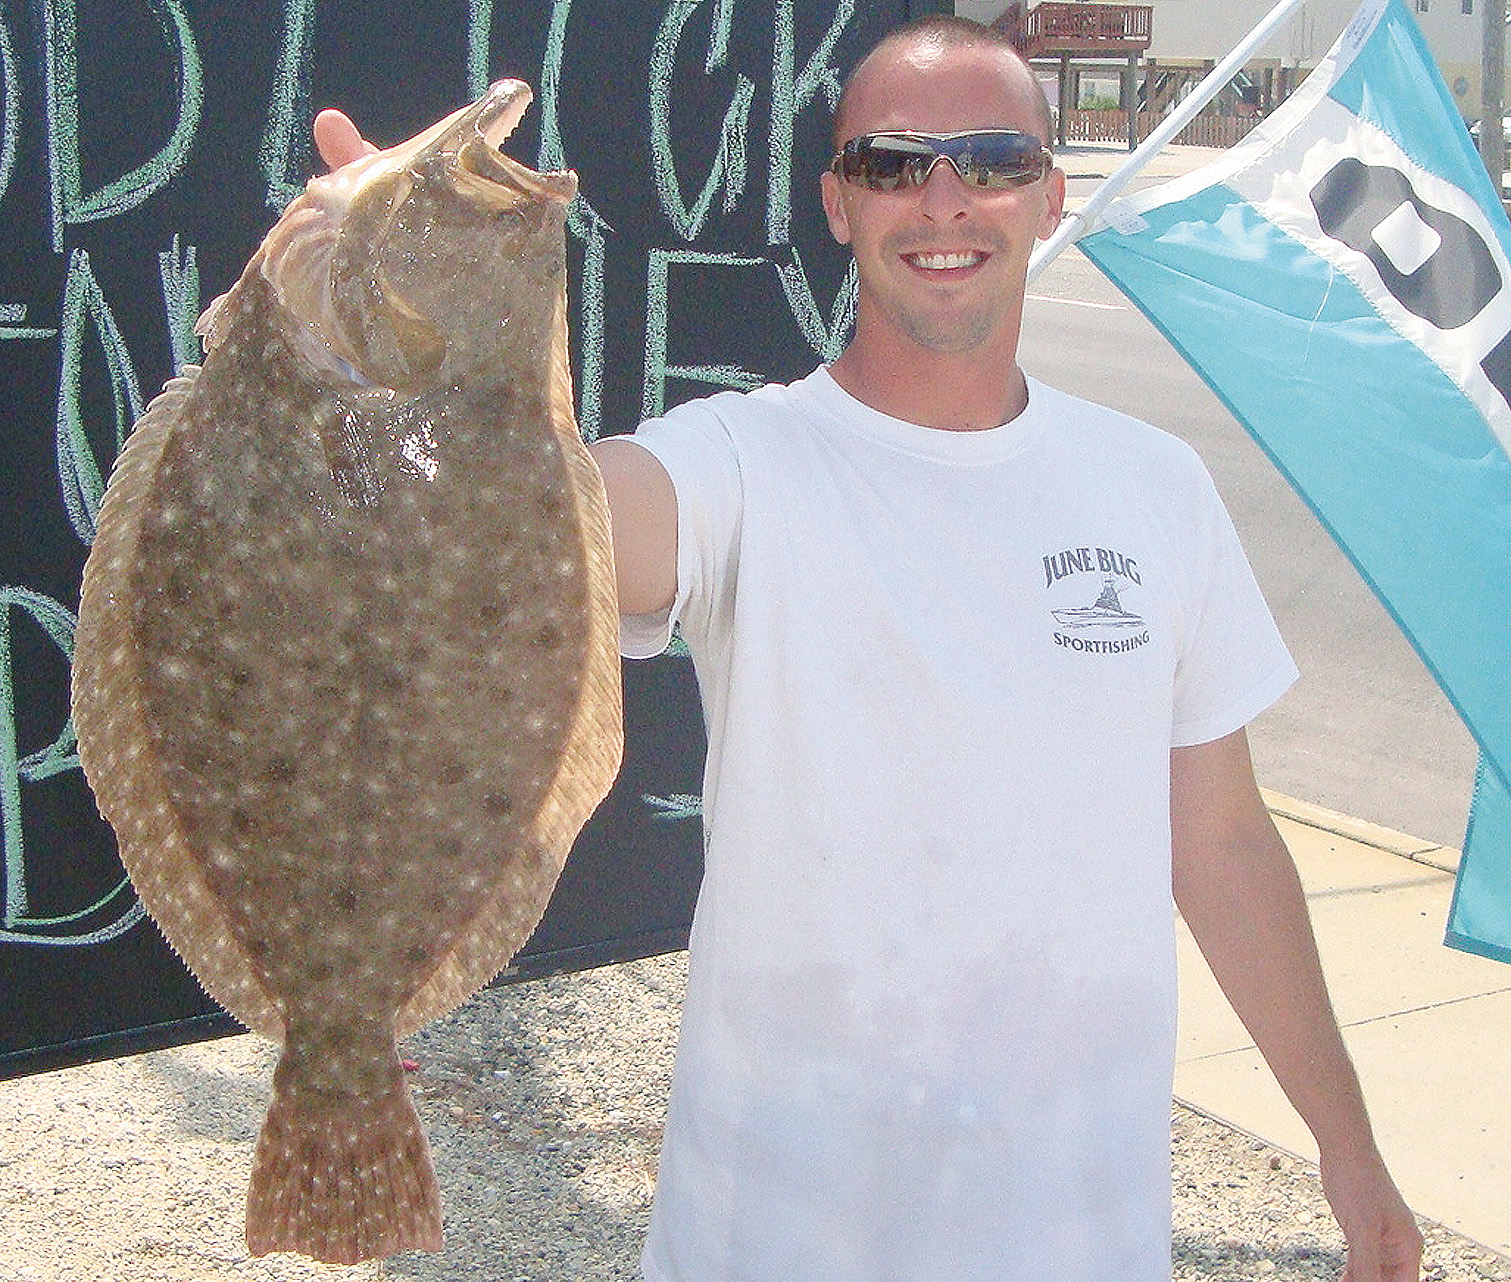 An angler shows off his fluke caught in Barnegat Bay. (Photo: Jersey Shore Fishing Magazine)